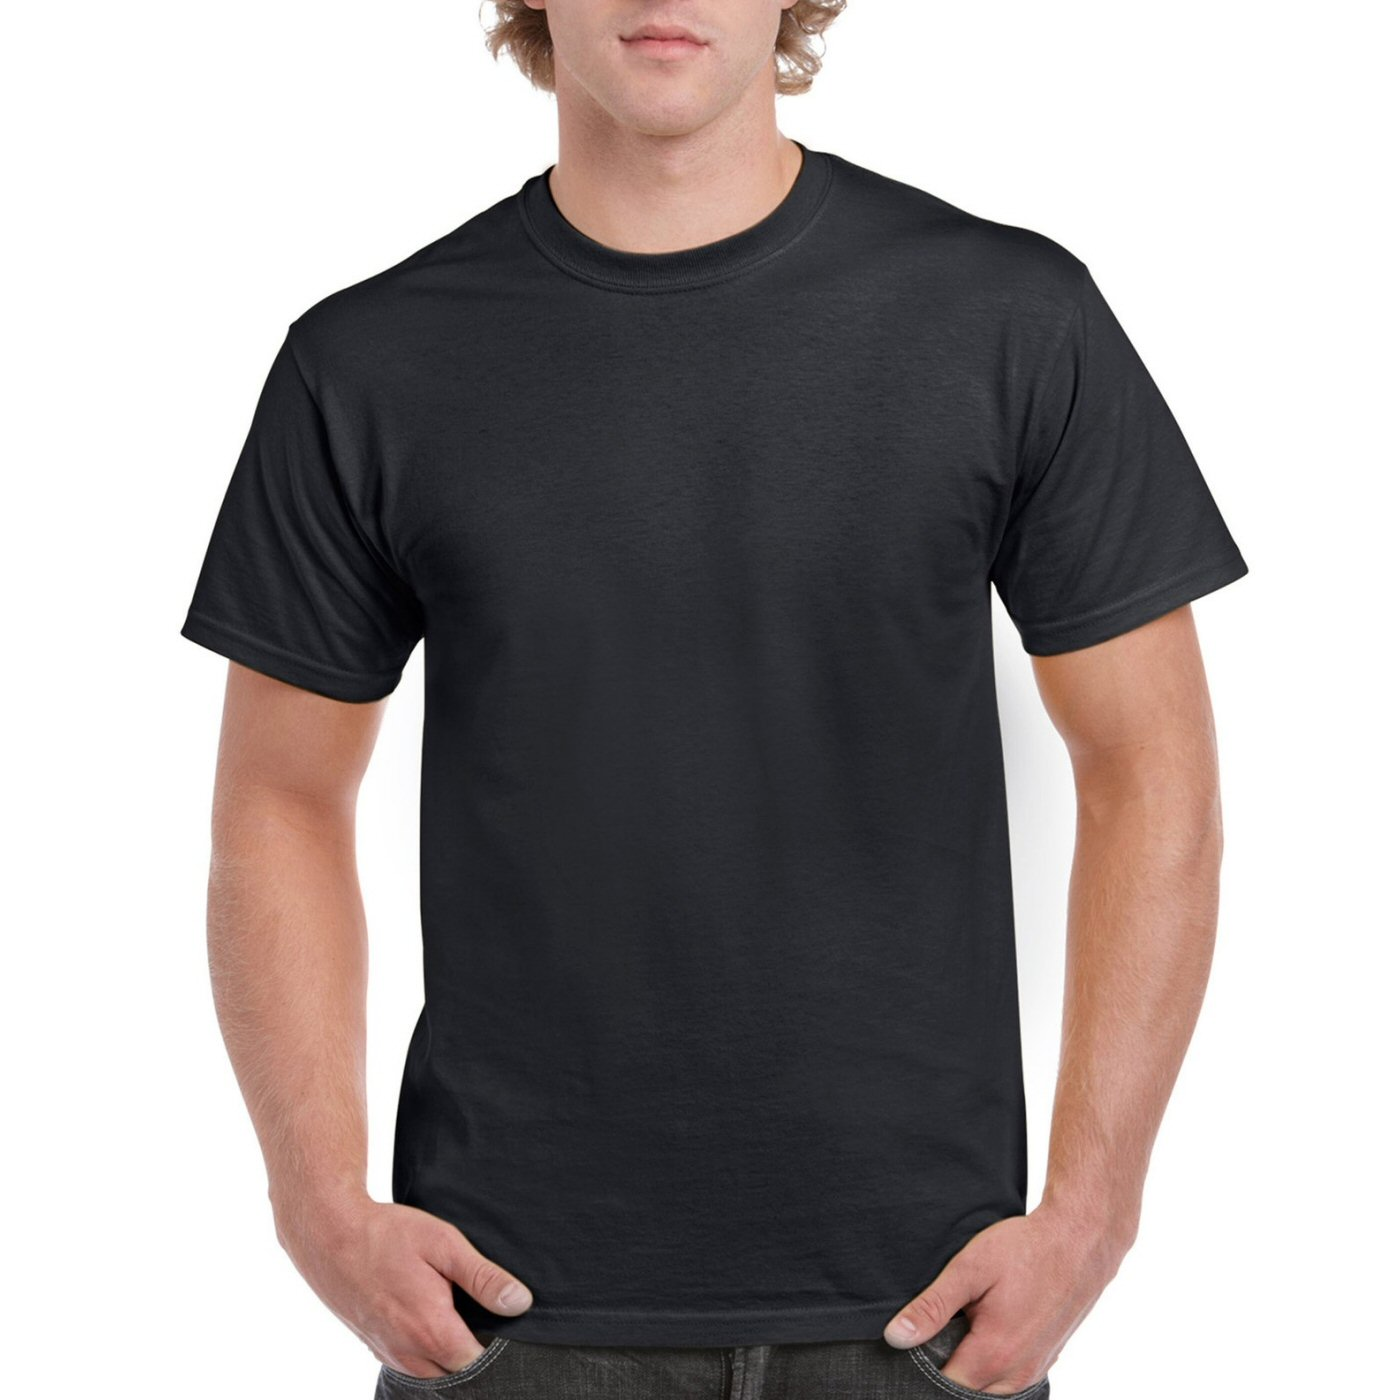 Plain t shirts for men buy plain t shirts online at low for Where to order blank t shirts